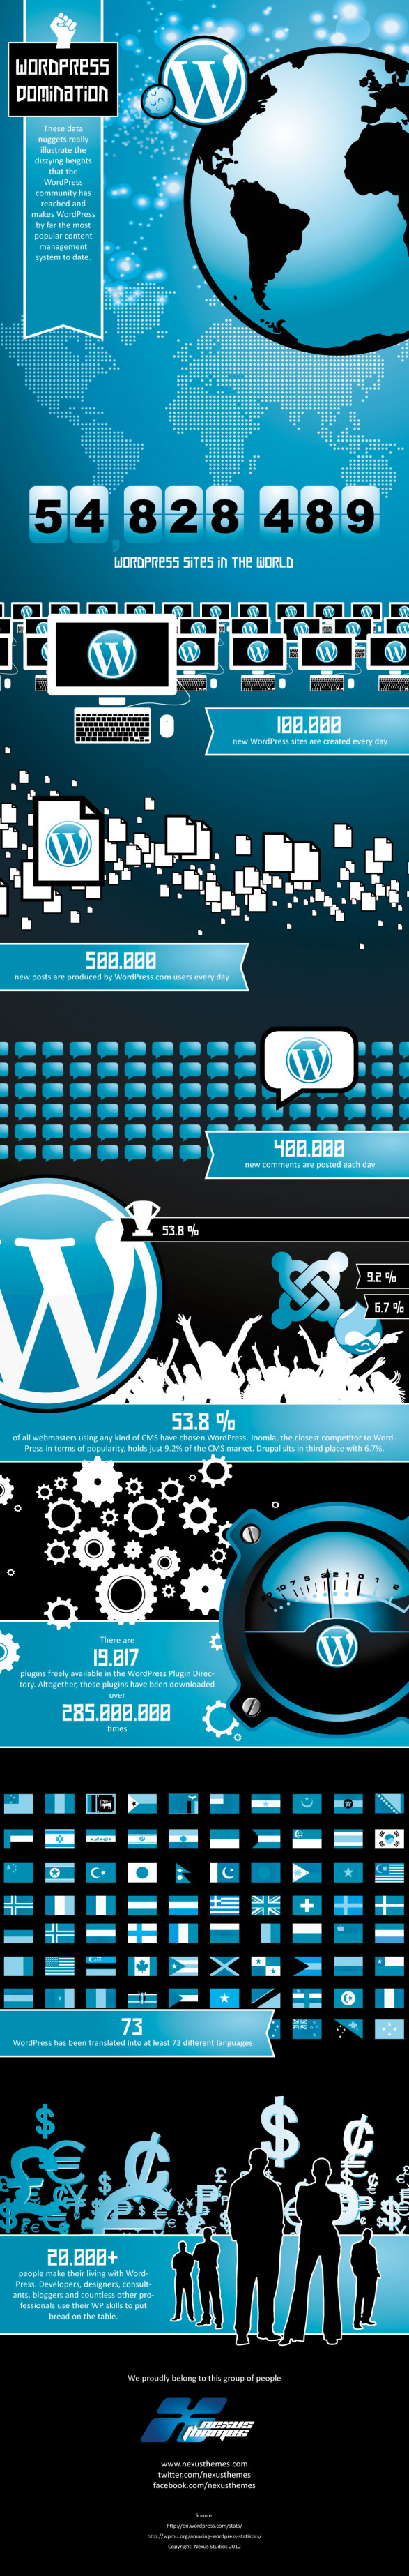 WordPress Domination